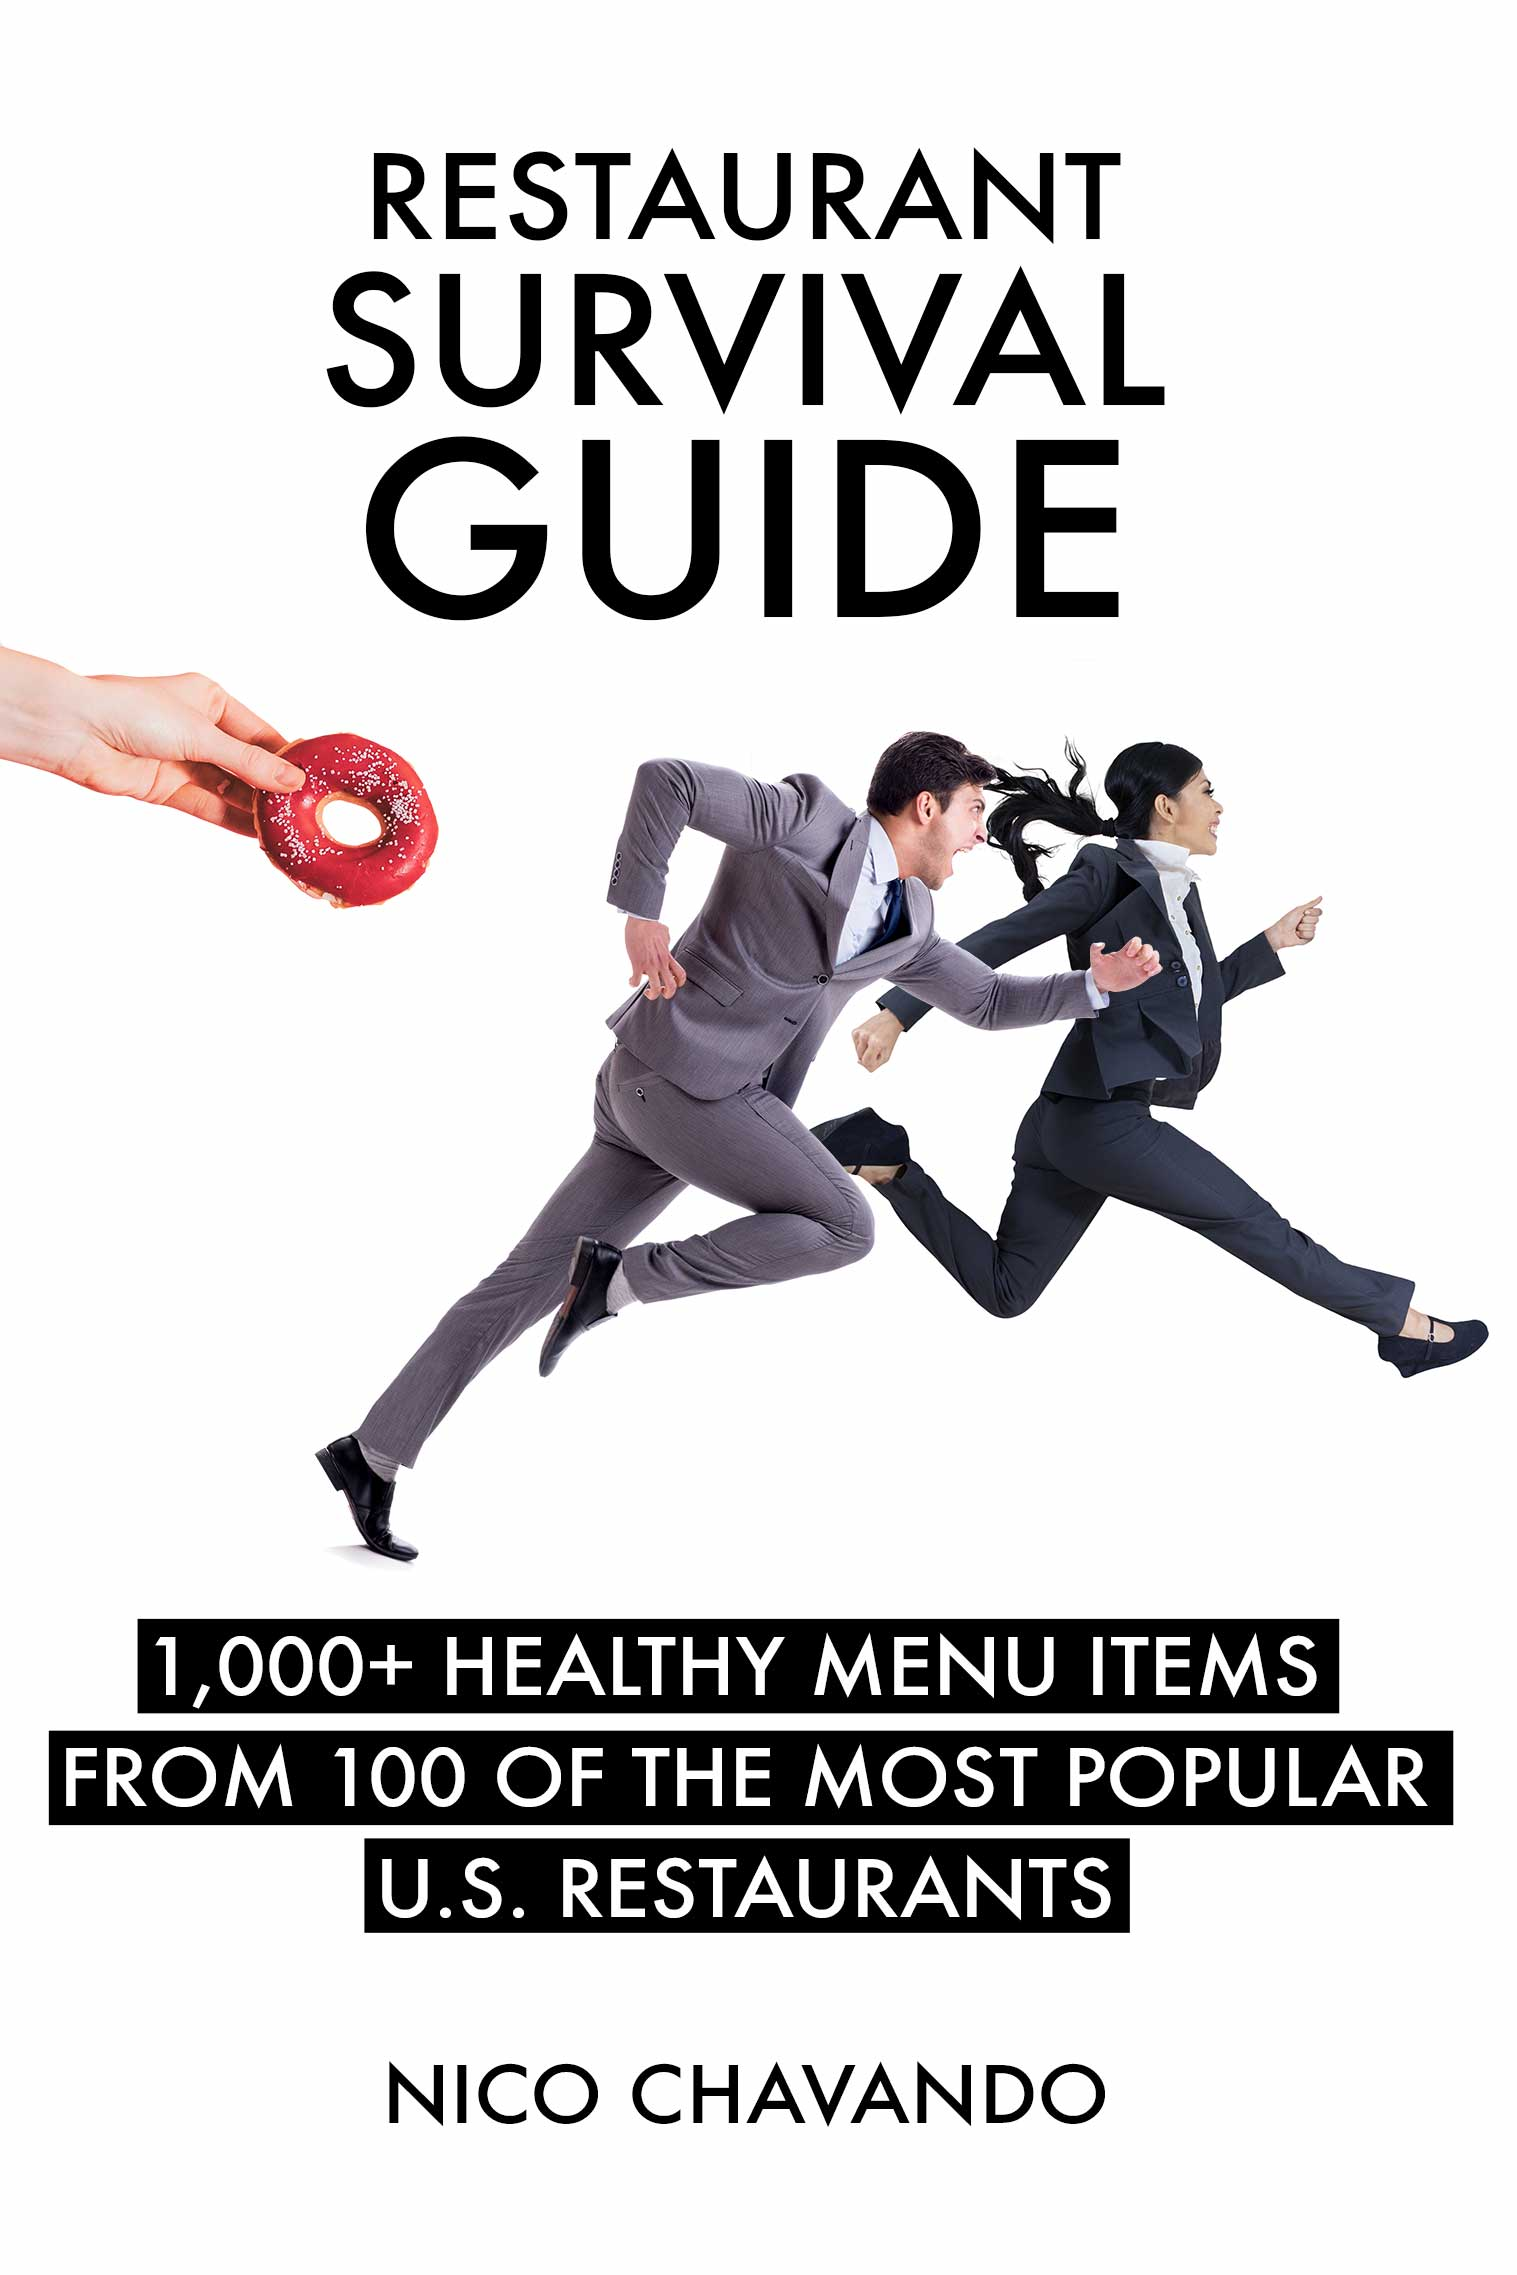 Restaurant Suvival Guide (cover for app)